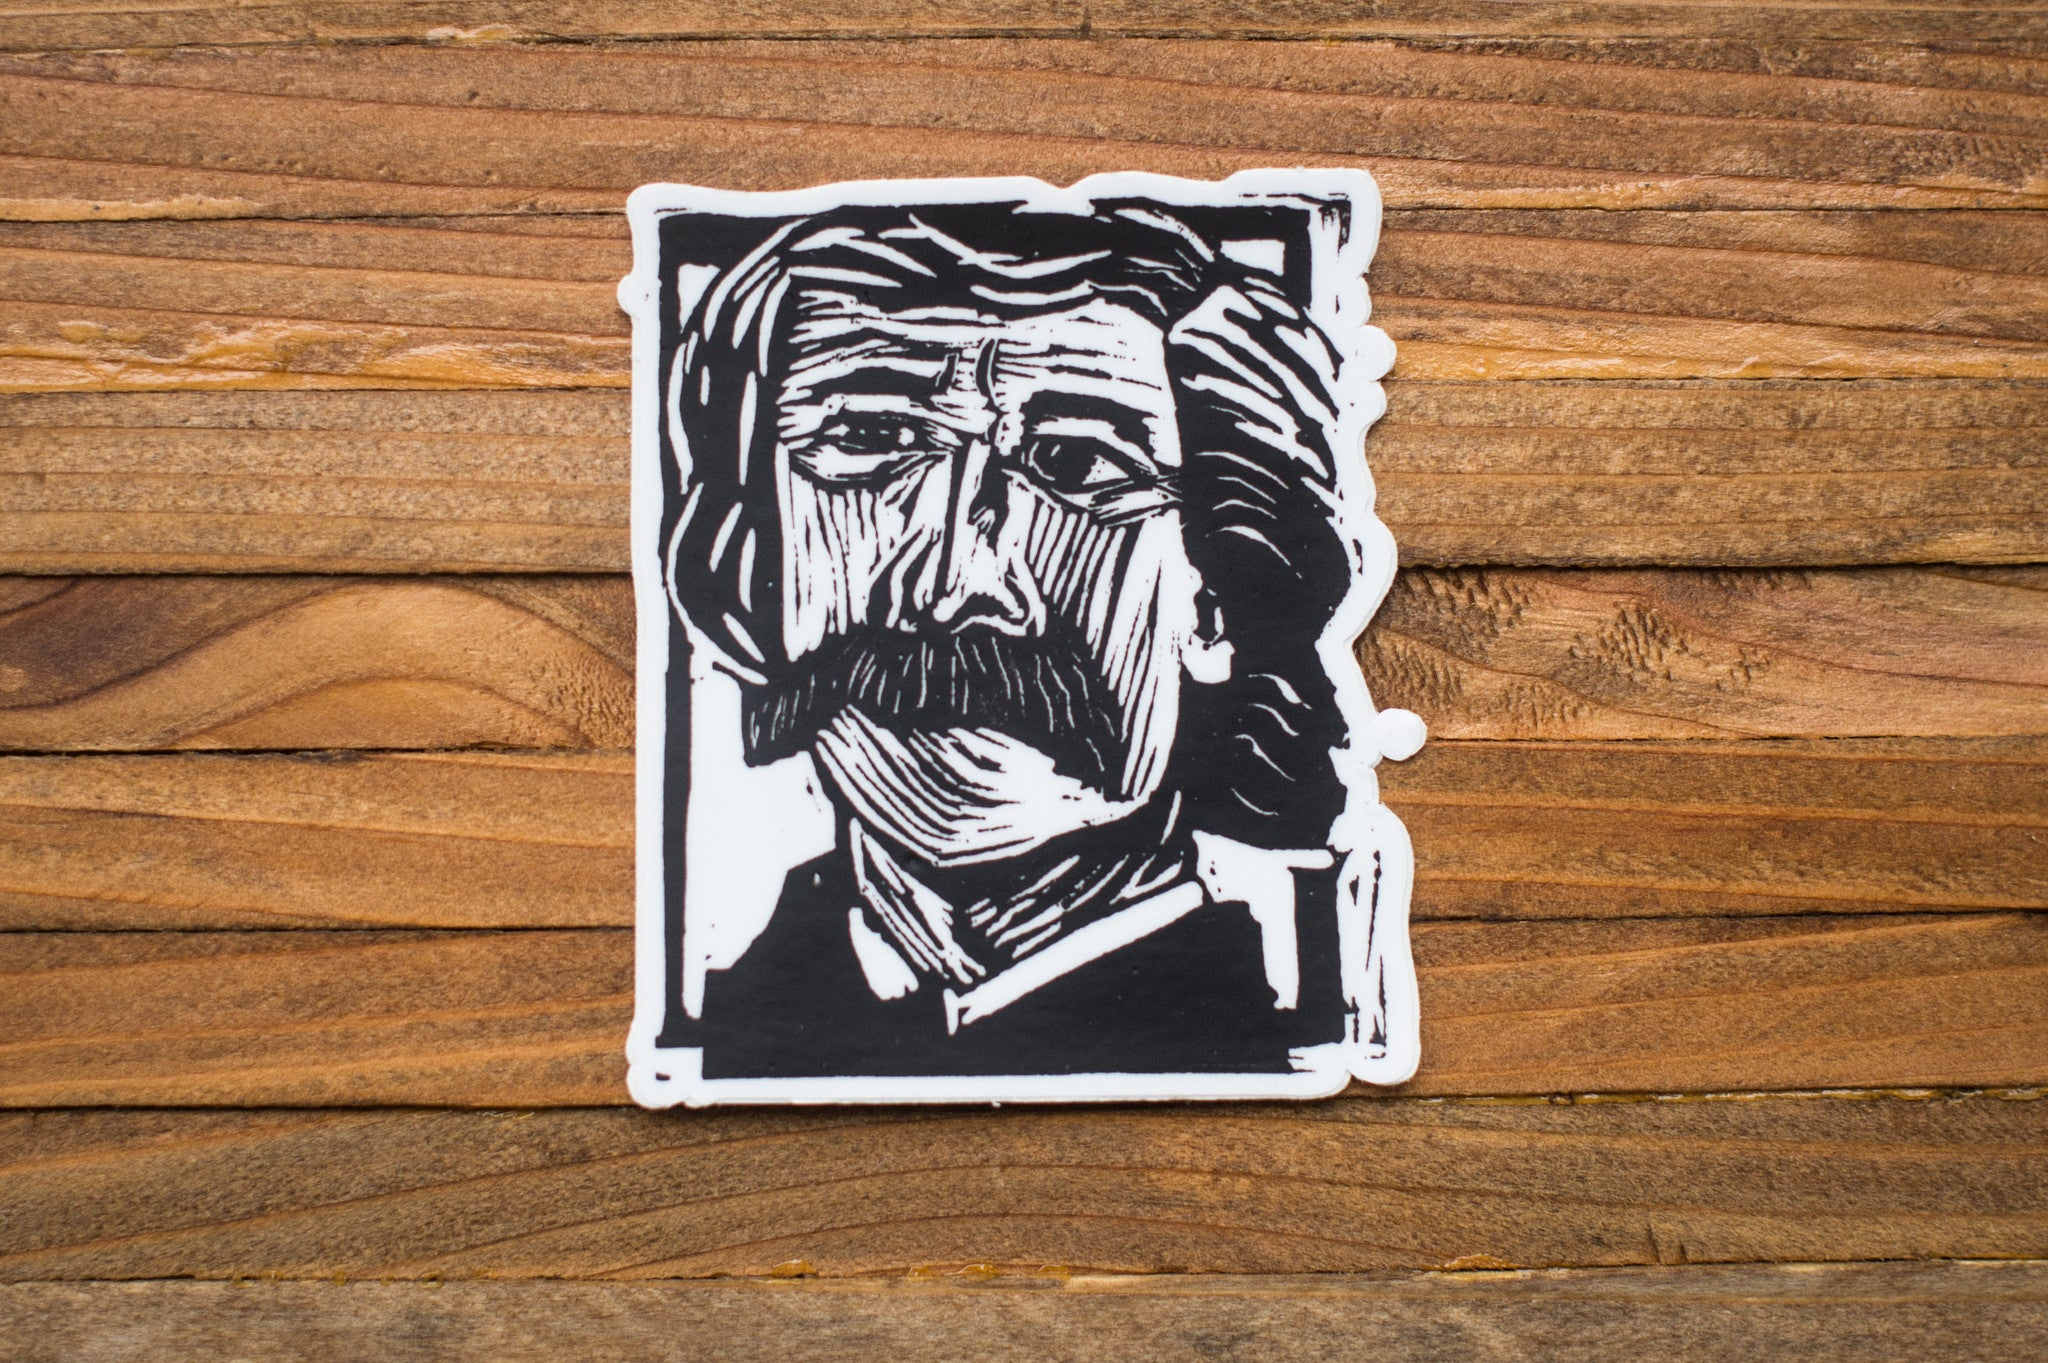 Mark Twain Art Print laptop vinyl sticker Literary Gift by Eastgrove Studio